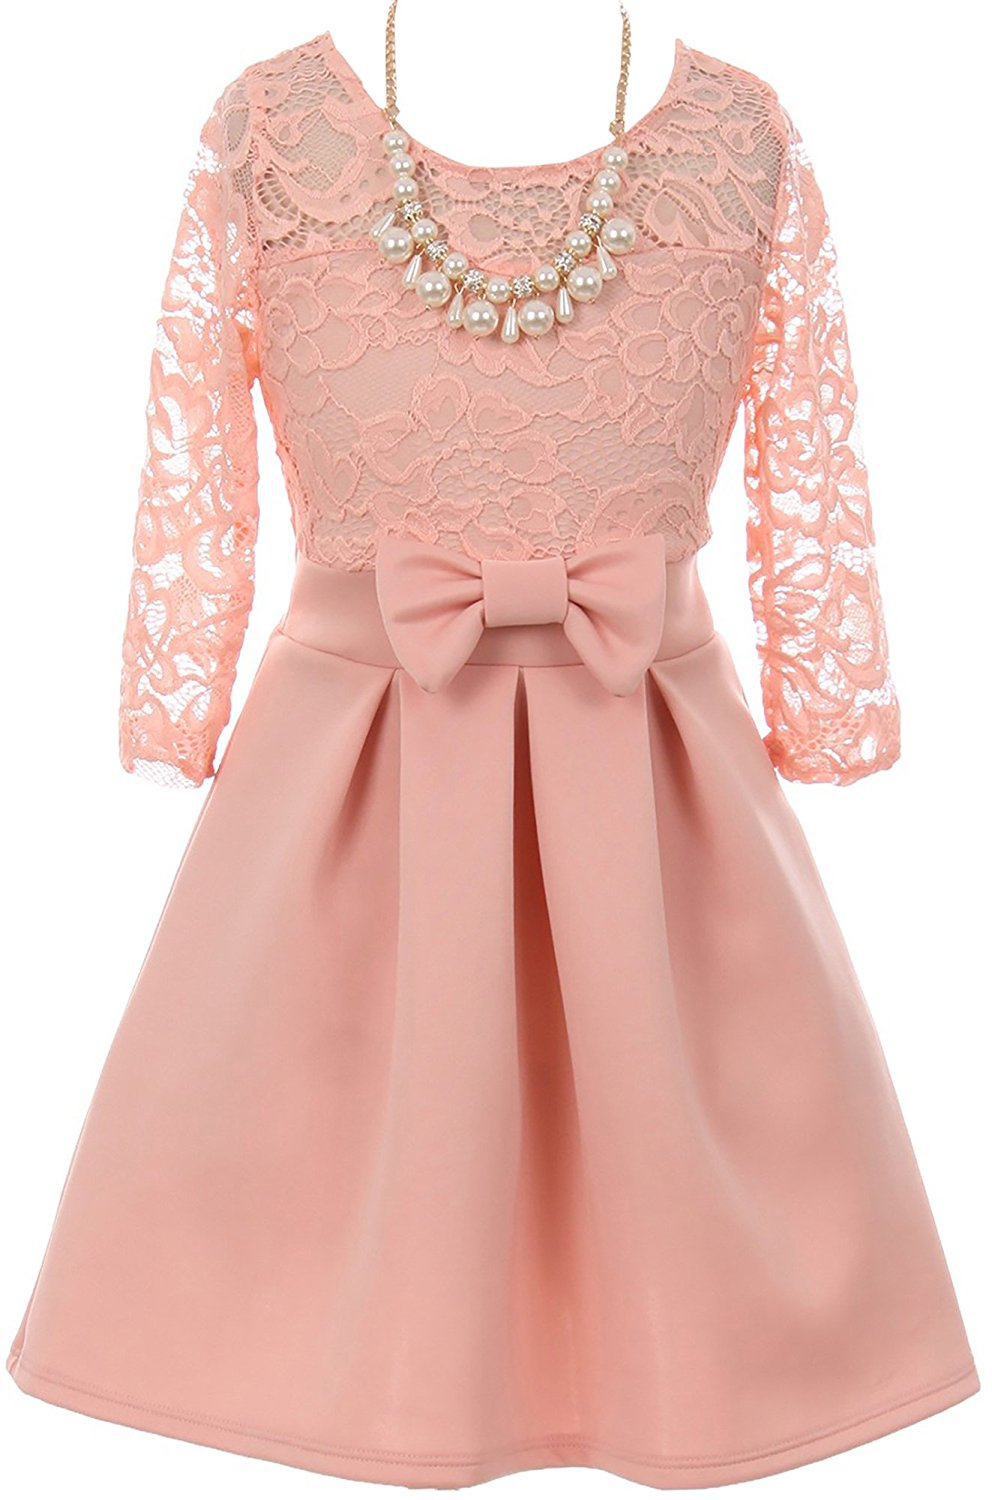 927af084b2 Get Quotations · Dreamer P Floral Lace Long Sleeve Illusion Neckline  Special Occasion Flower Girl Dress